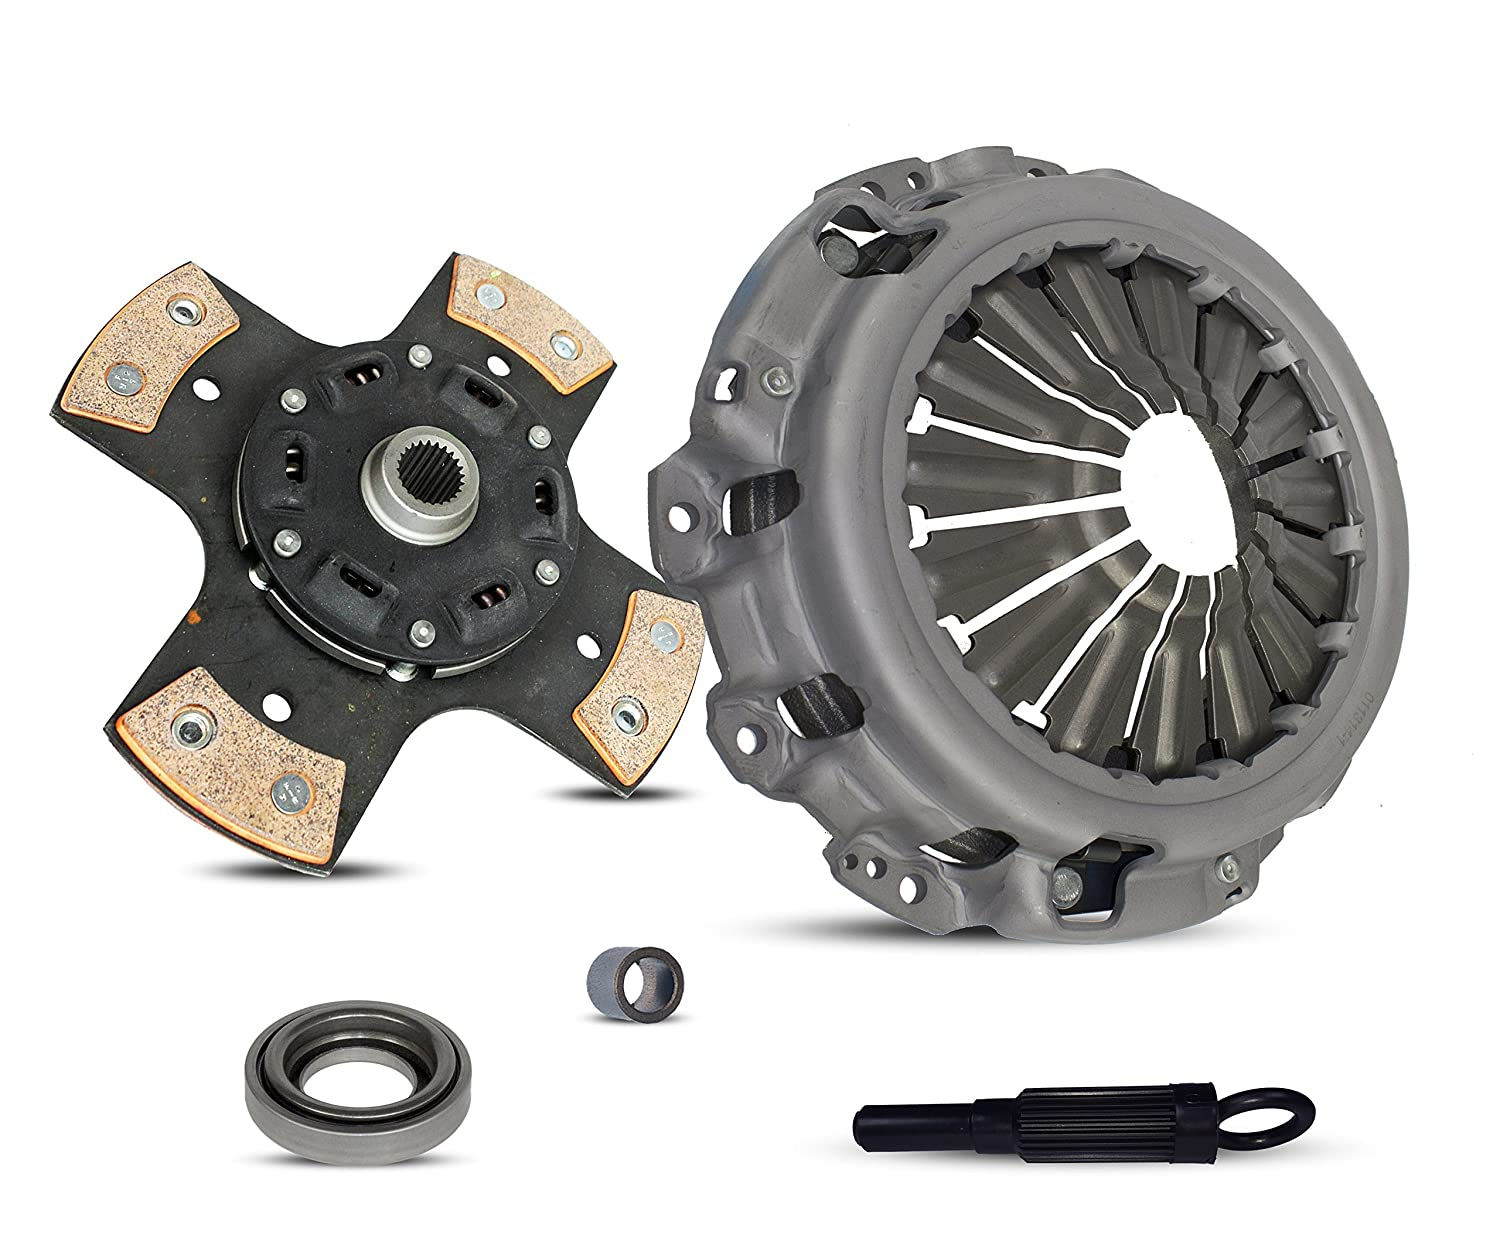 3.5L ALL MODELS; VQ35DE; 6 Speed Trans; 4-Puck Clutch Disc Stage 2 Clutch Kit Works With Nissan 350Z Infiniti G35 Base Sport Journey X Grand Touring 2003-2007 3.5L V6 GAS DOHC Naturally Aspirated